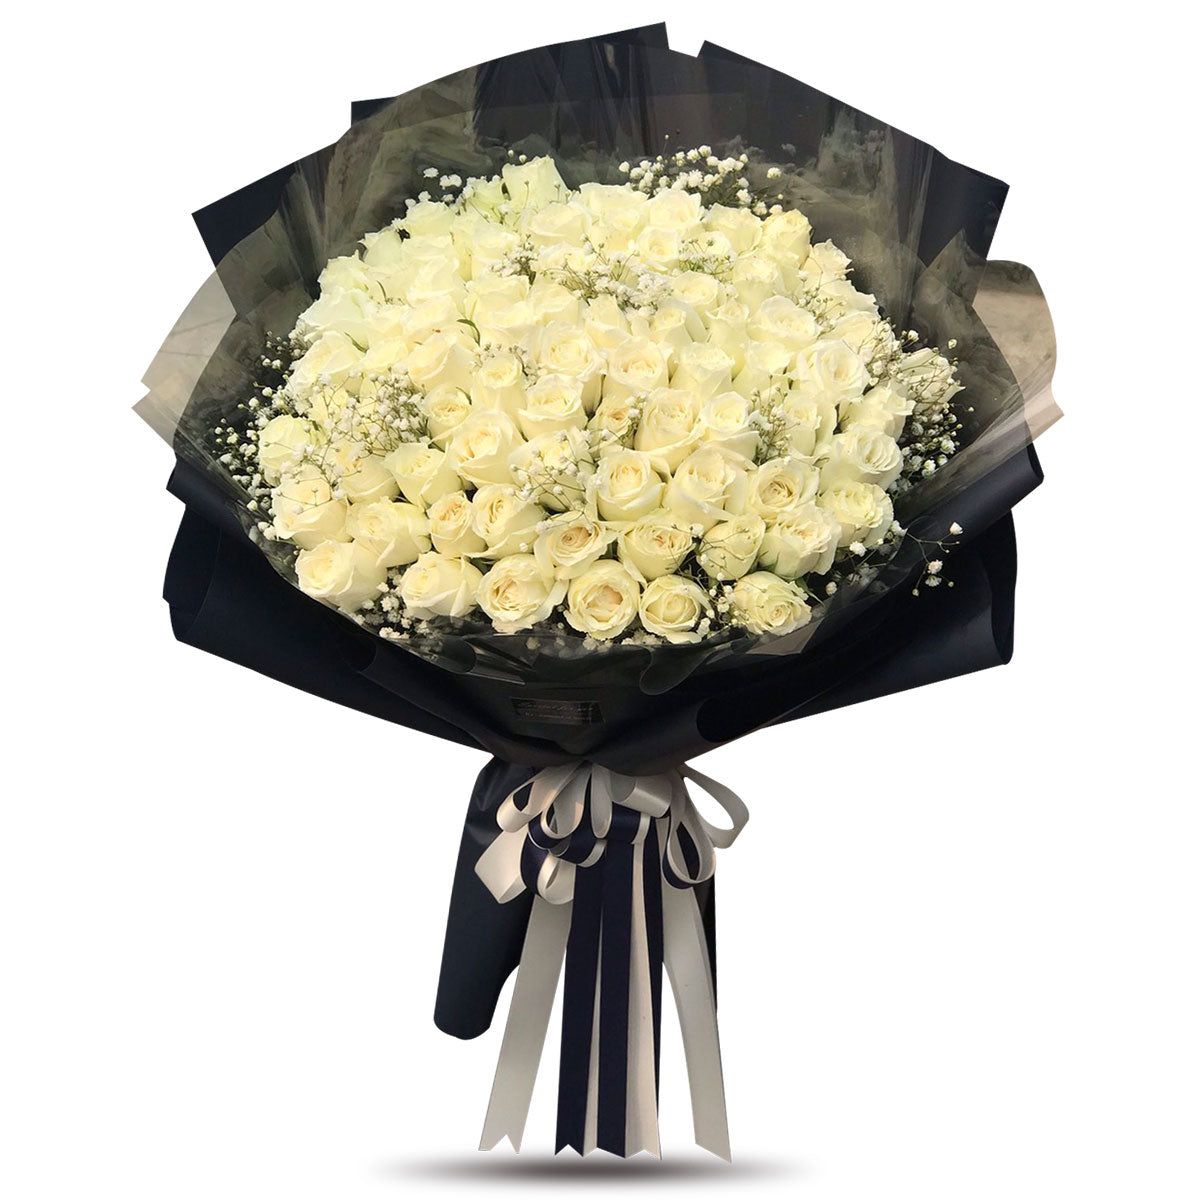 XXL Bouquet Of 100 White Roses - April Flora